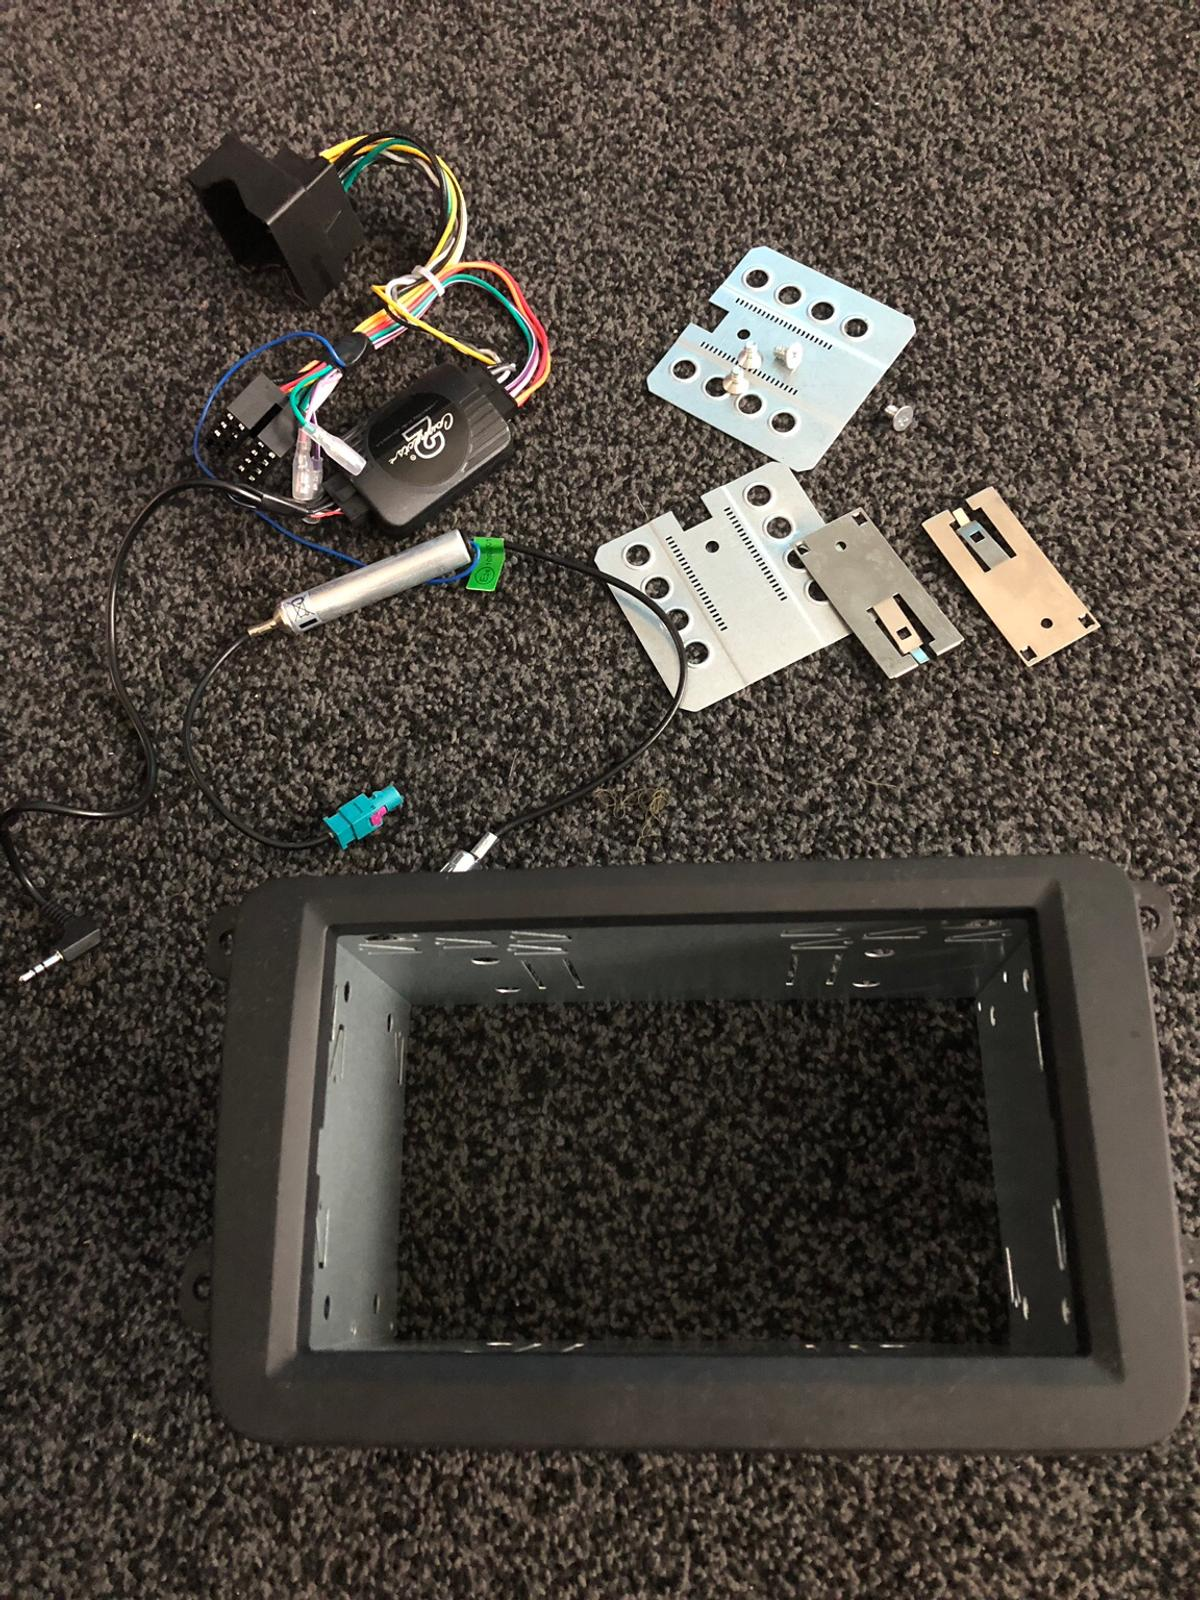 Vw double din after market stereo adaptor kit in DE7 Valley